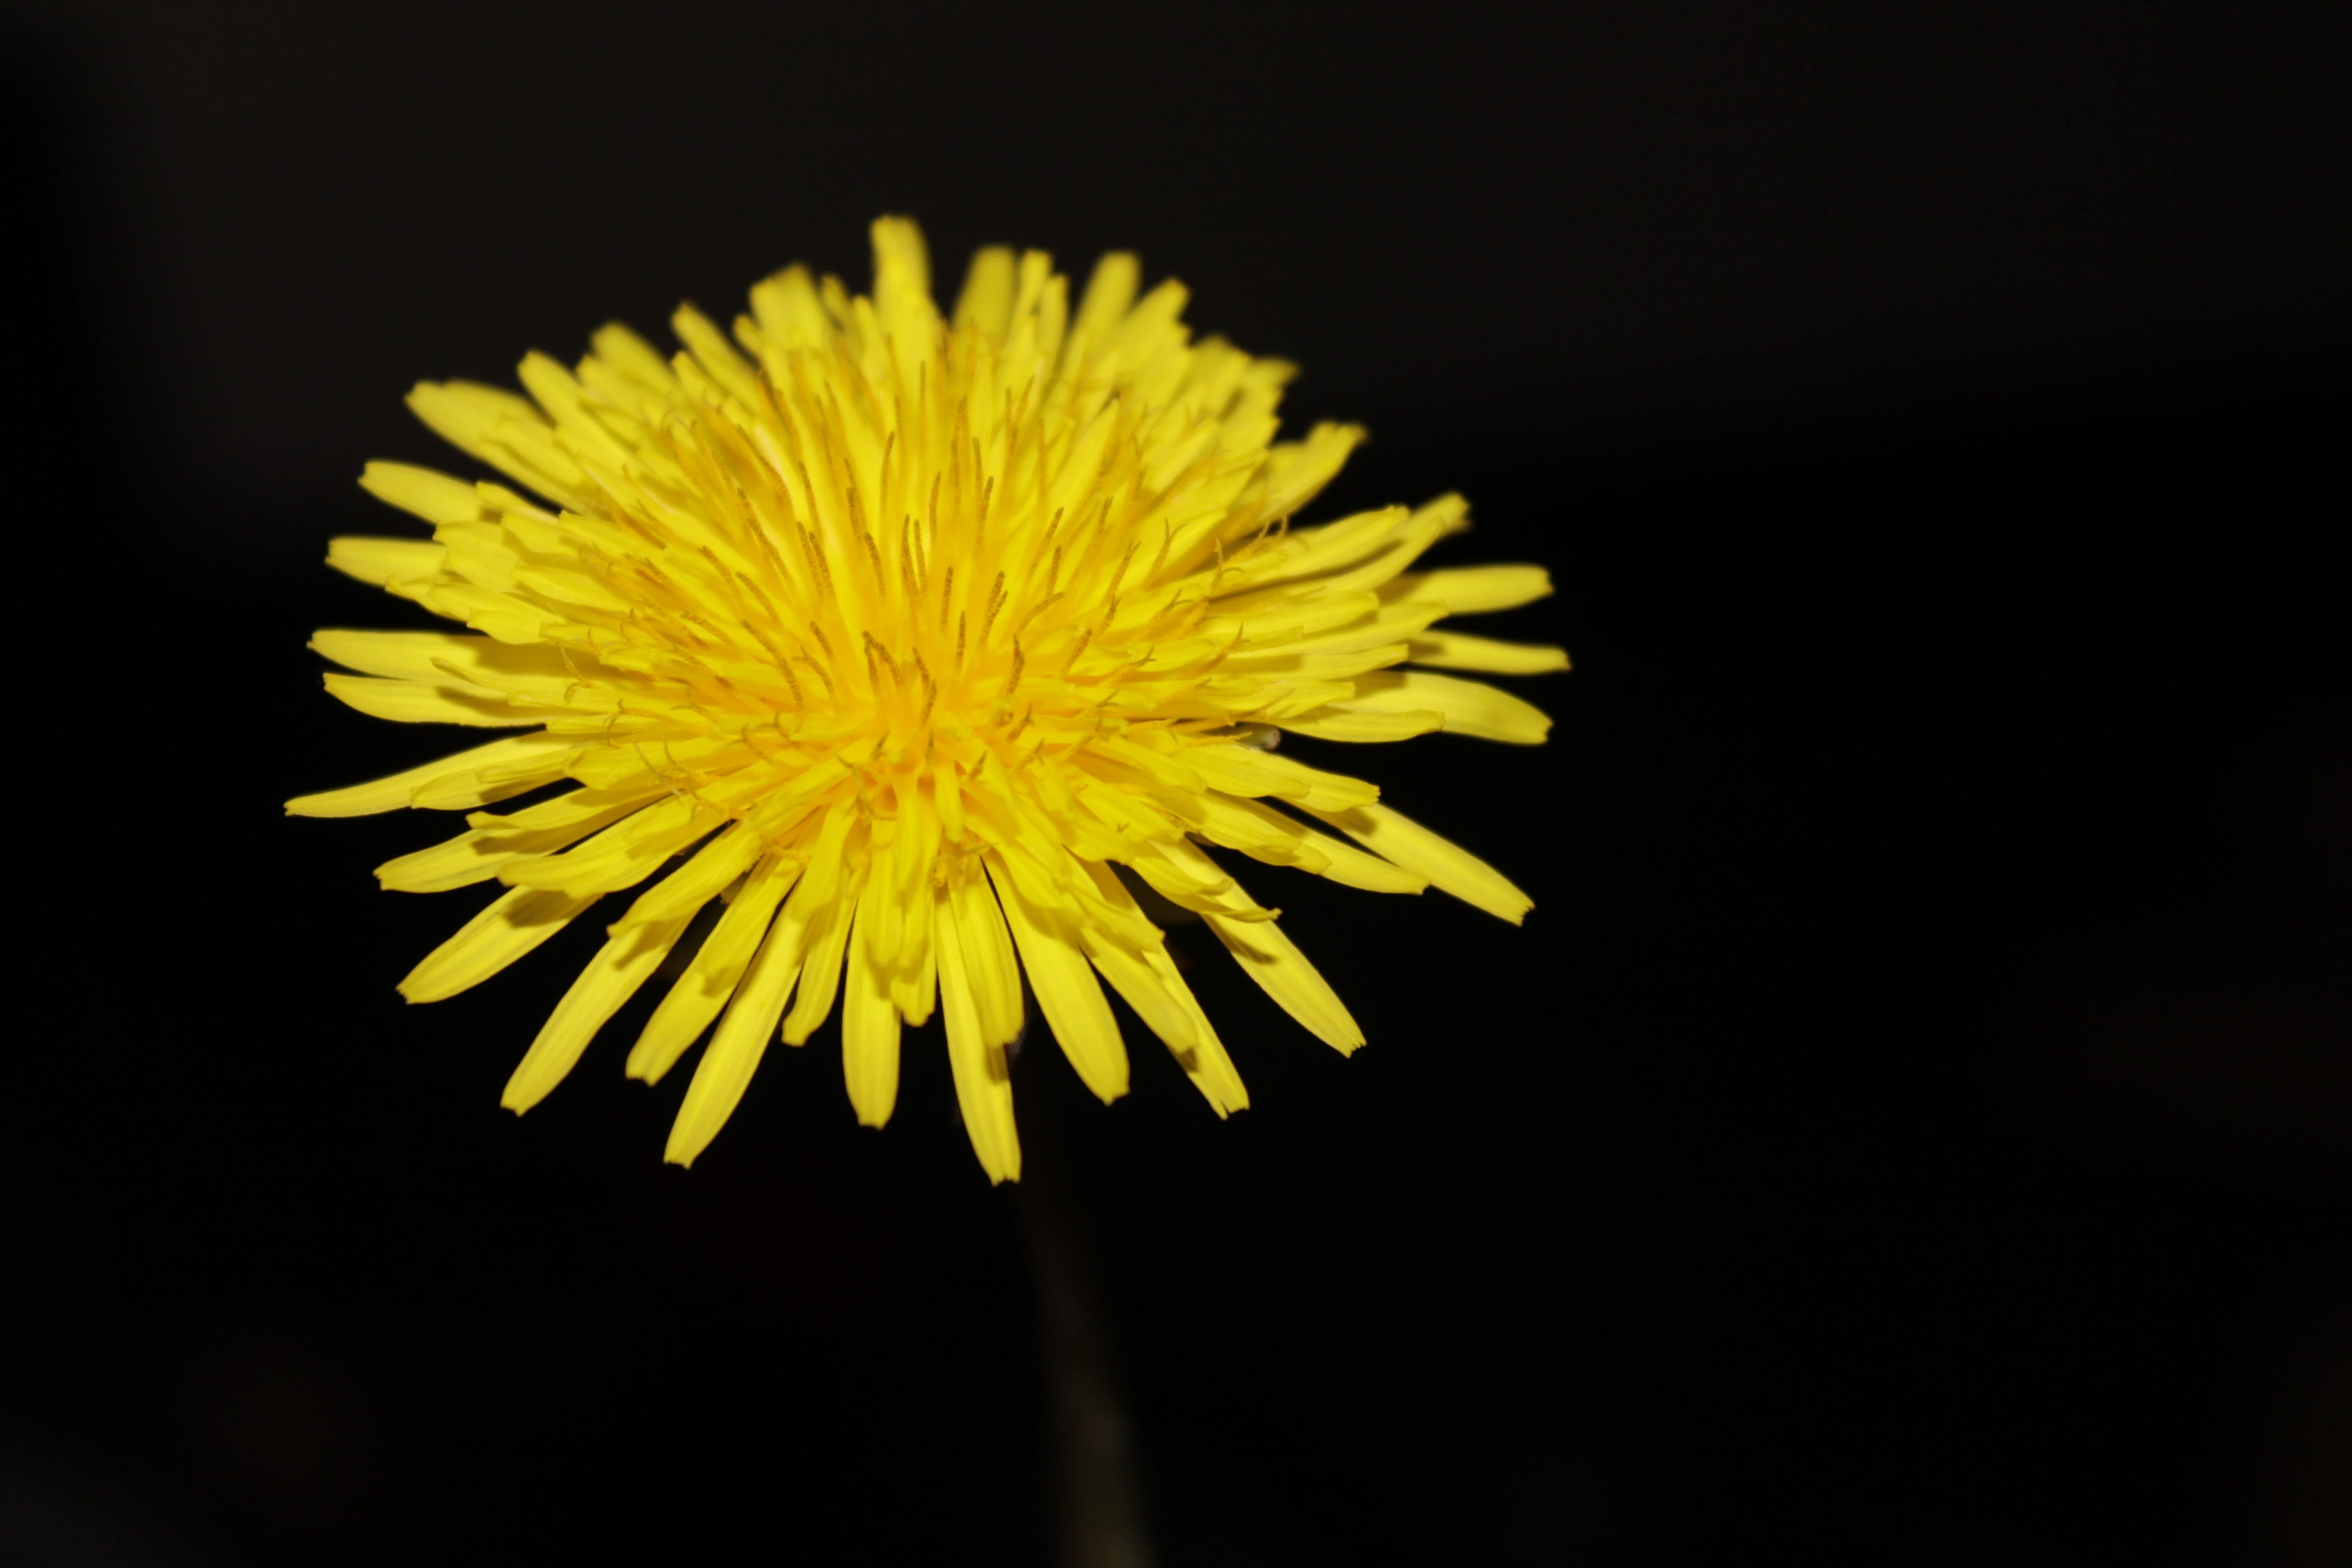 Close Photography of Yellow Aster